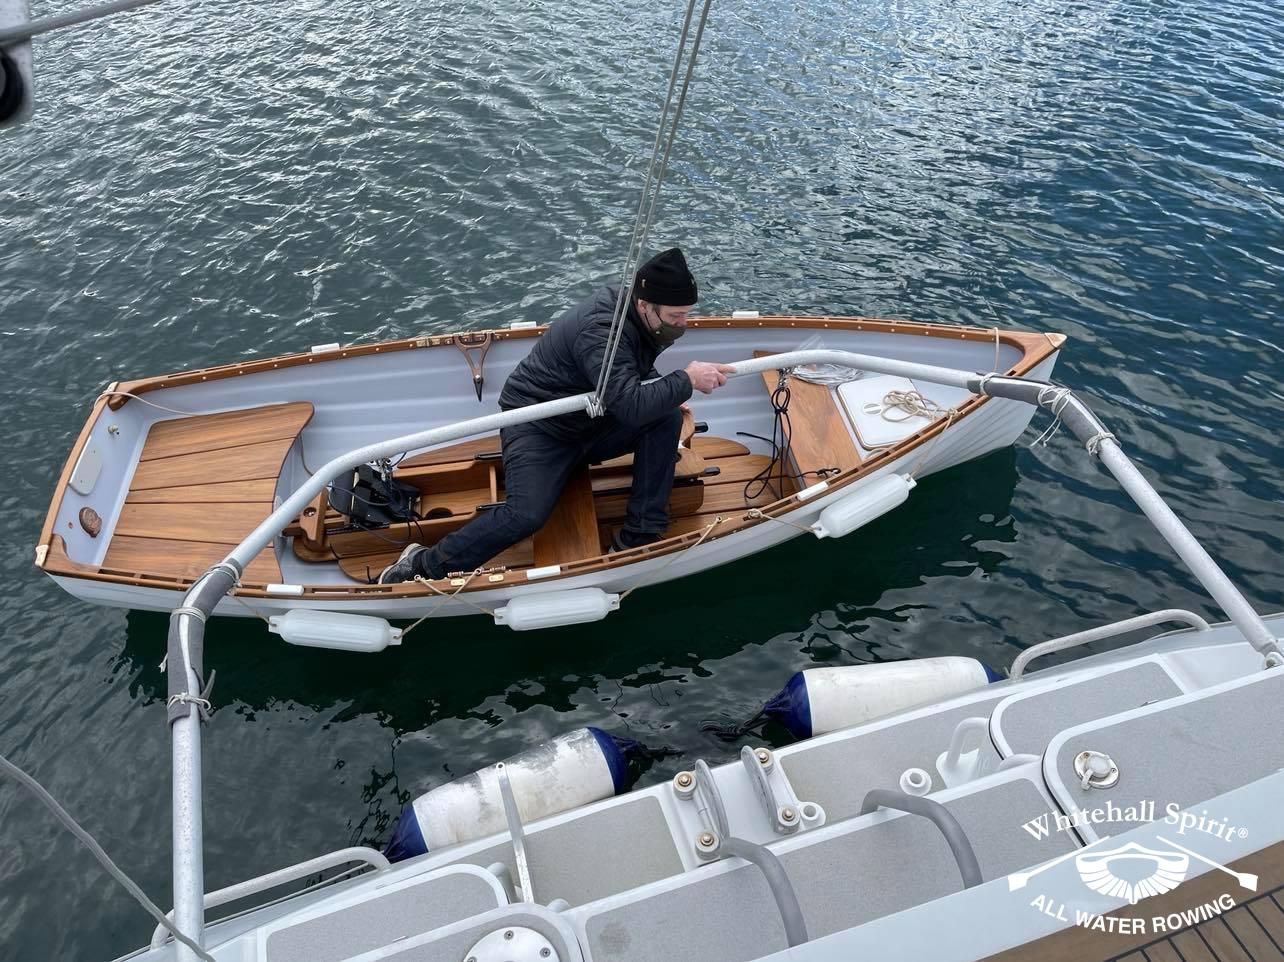 Beyond-the-Blue-boat-owner-David-with-Whitehall-Rowing-and-Sail-8L